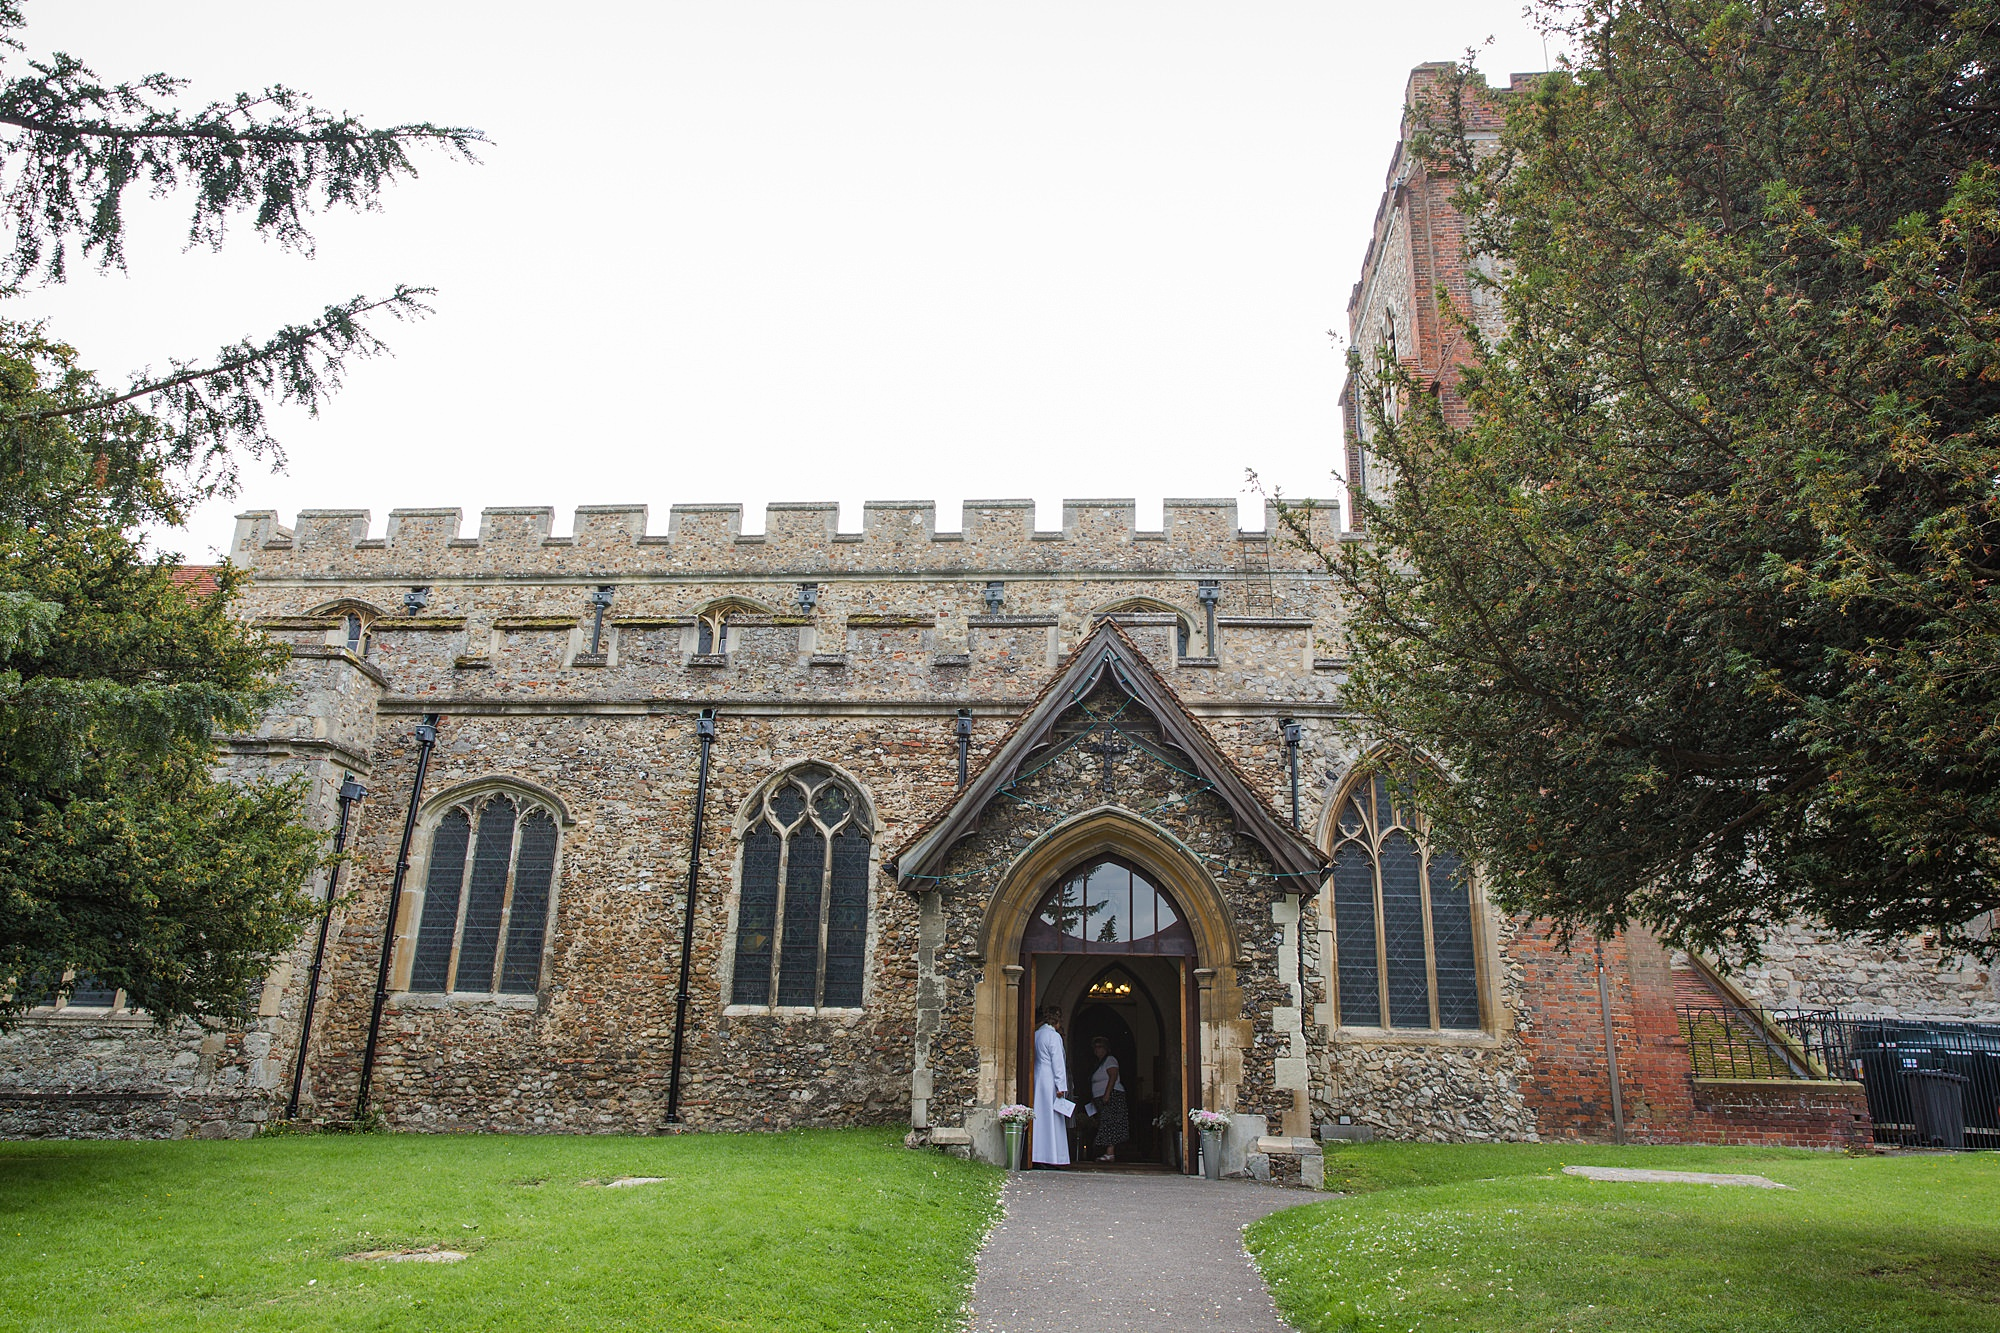 Writtle university college wedding church exterior